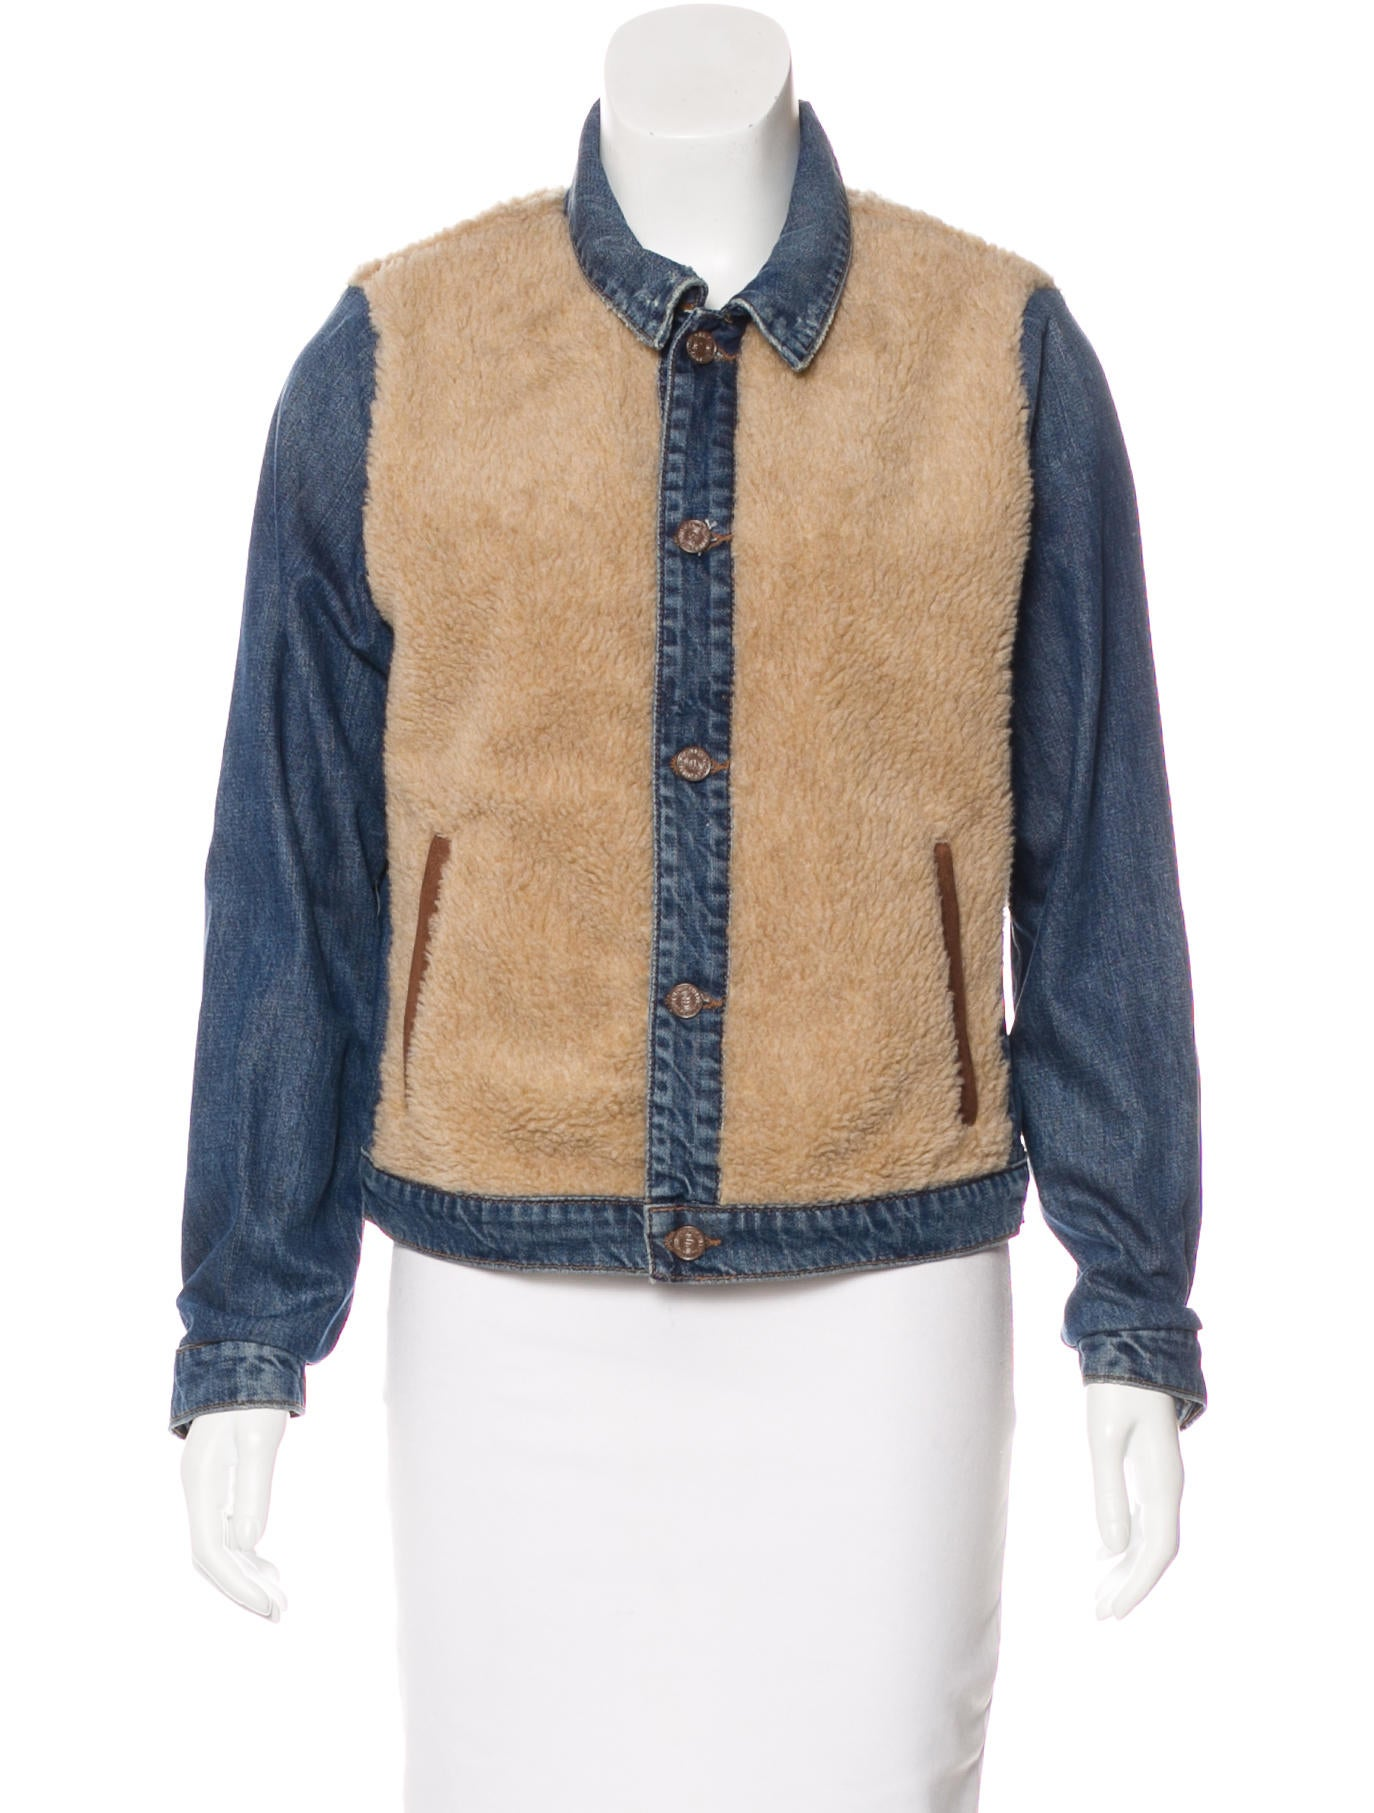 manakamanamobilecenter.tk: denim shearling jacket. From The Community. Amazon Try Prime All Allegra K Women's Imitated Shearling Collar Denim Jacket. by Allegra K. $ - $ $ 18 $ 20 99 Prime. FREE Shipping on eligible orders. Some sizes/colors are Prime eligible. out of .